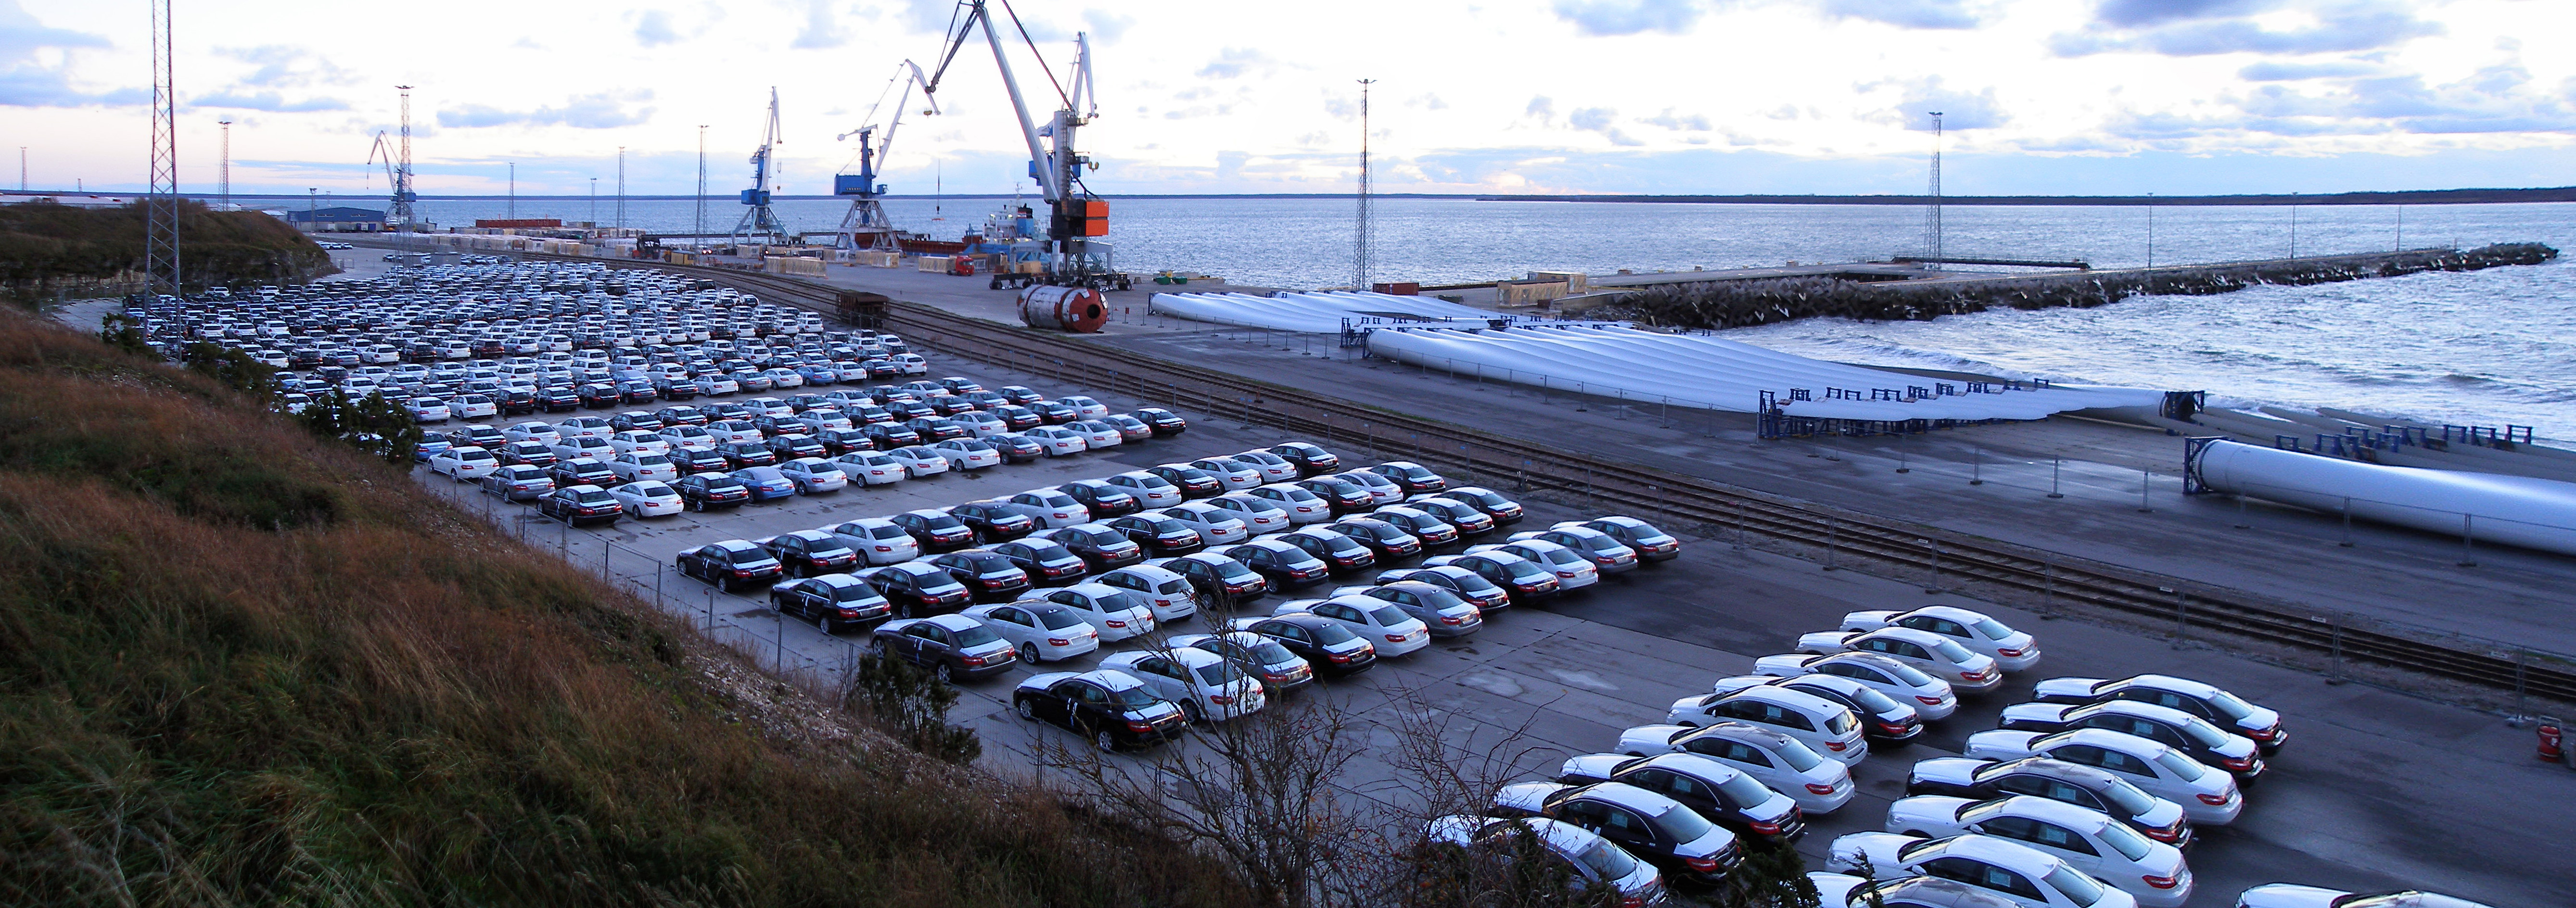 Port Of Baltimore Unsold Cars For Sale